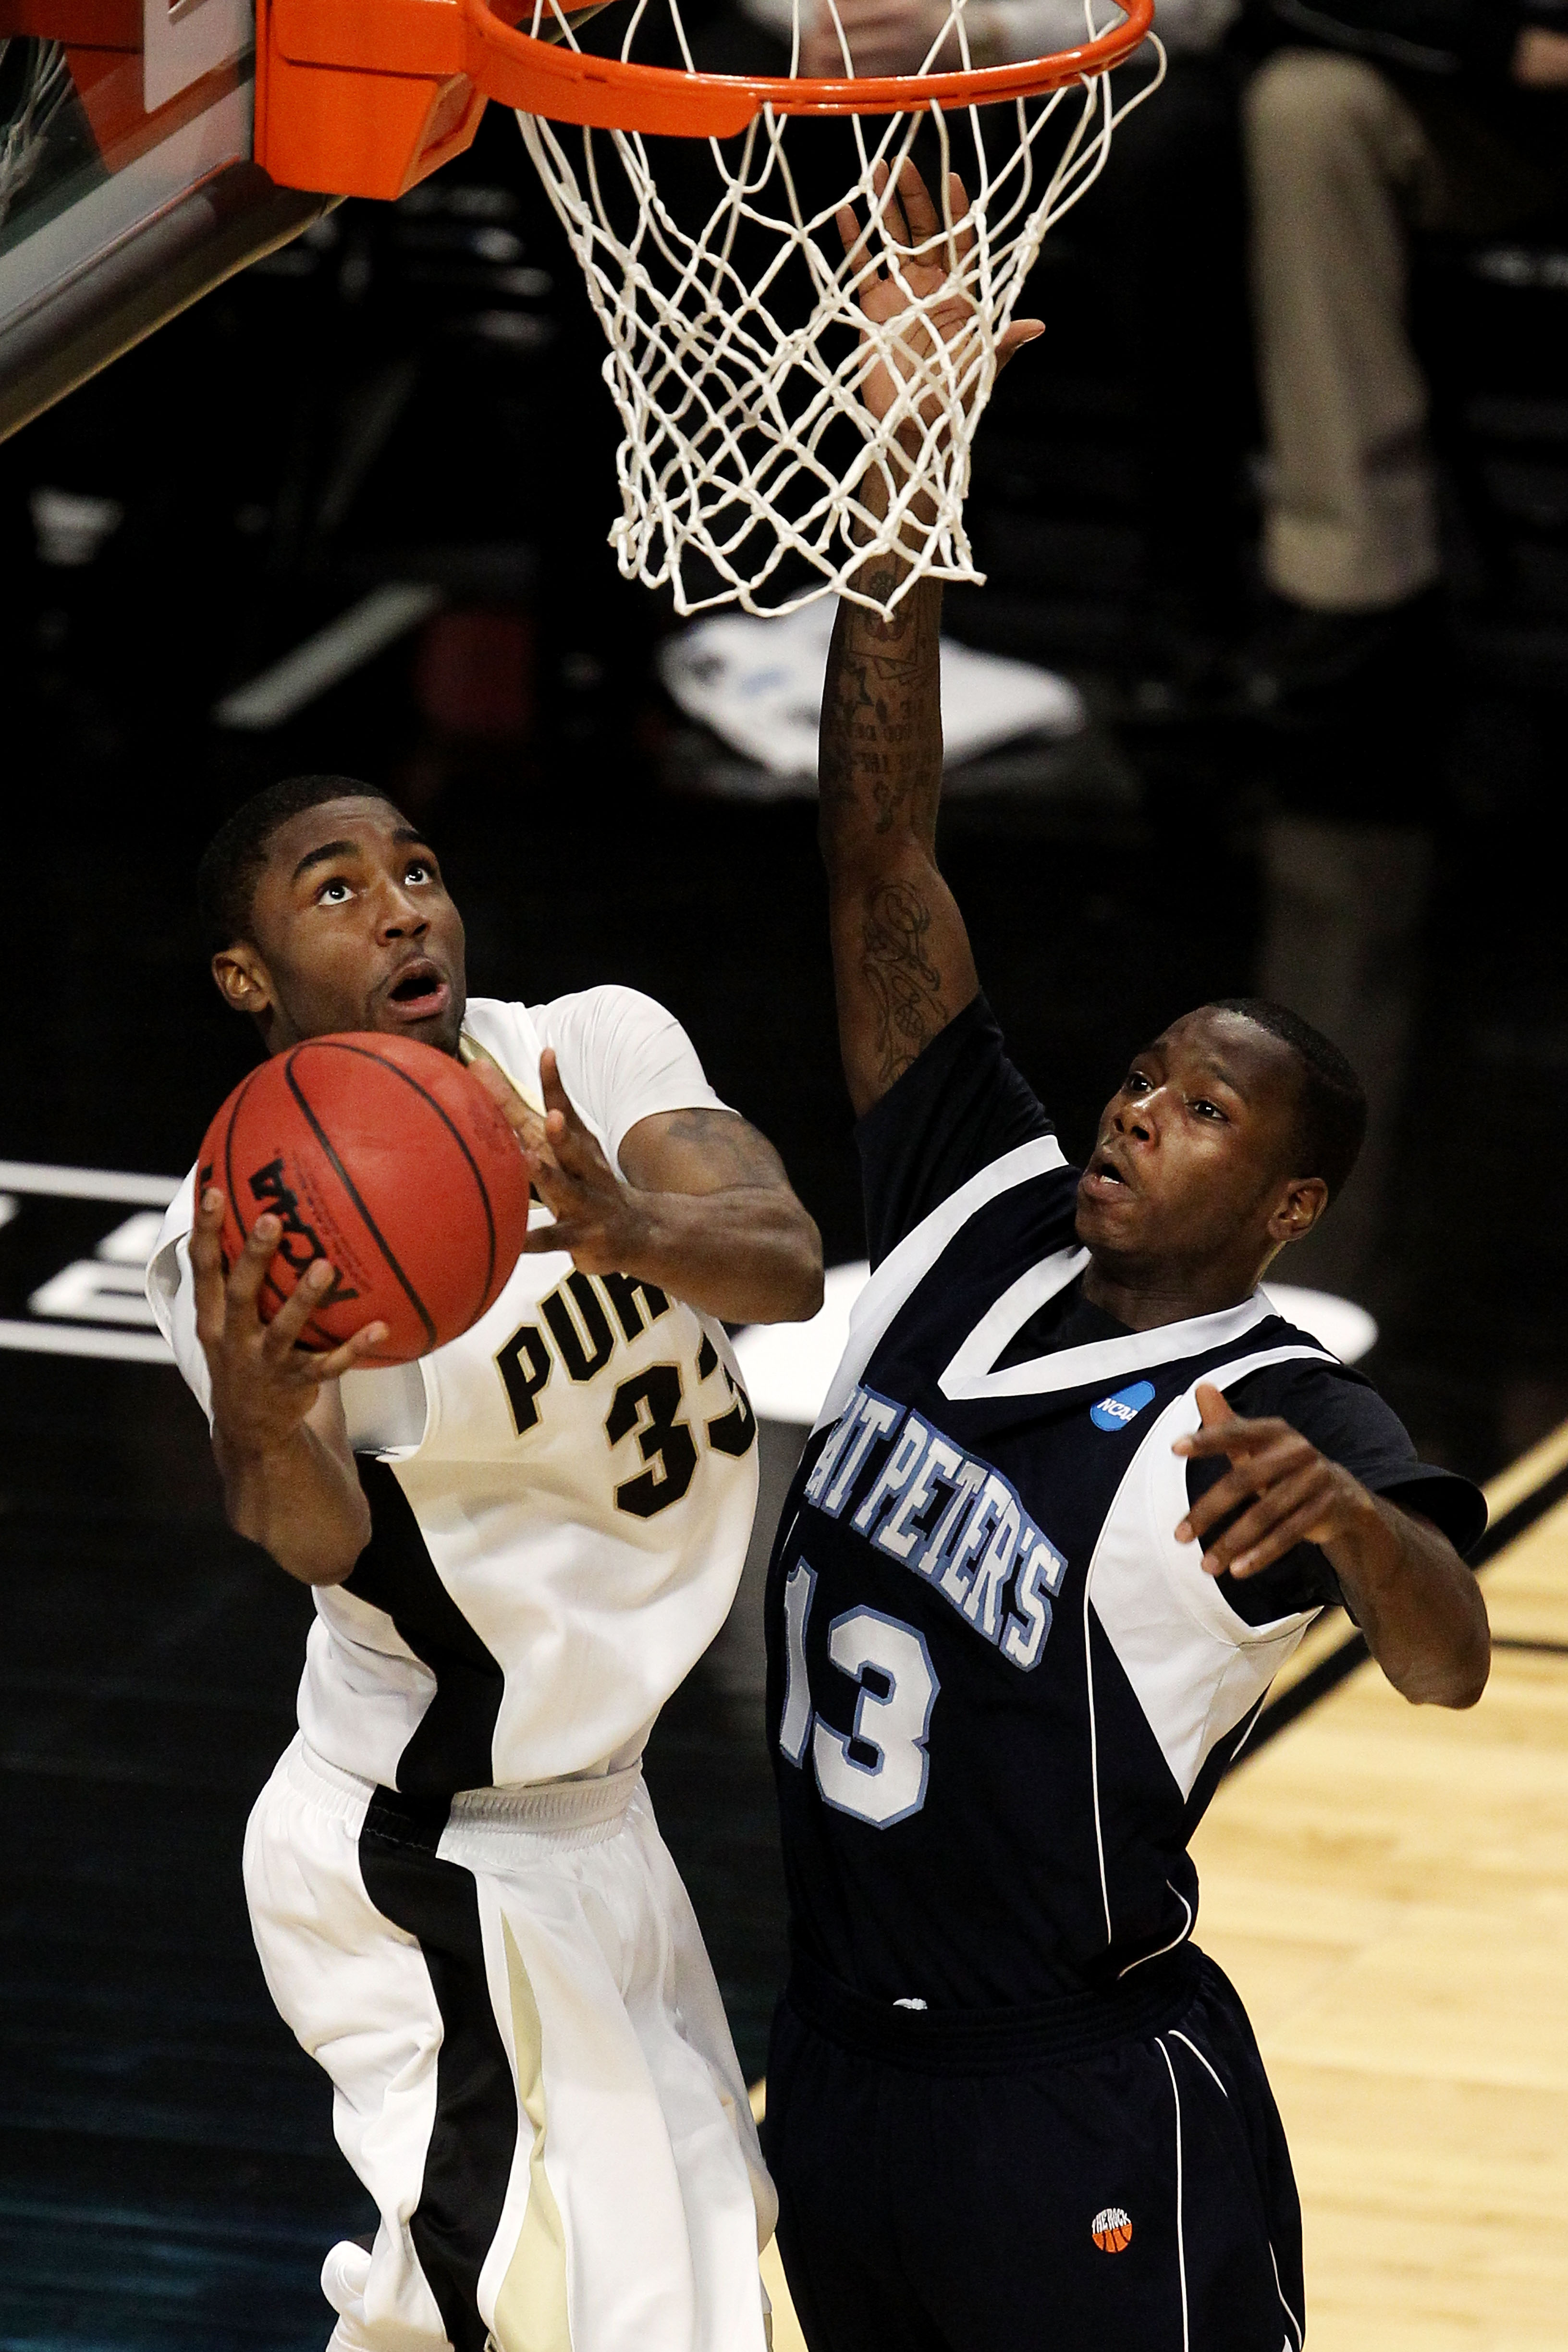 CHICAGO, IL - MARCH 18:  E'Twaun Moore #33 of the Purdue Boilermakers shoots against Steven Samuels #13 of the St. Peter's Peacocks in the second half during the second round of the 2011 NCAA men's basketball tournament at the United Center on March 18, 2